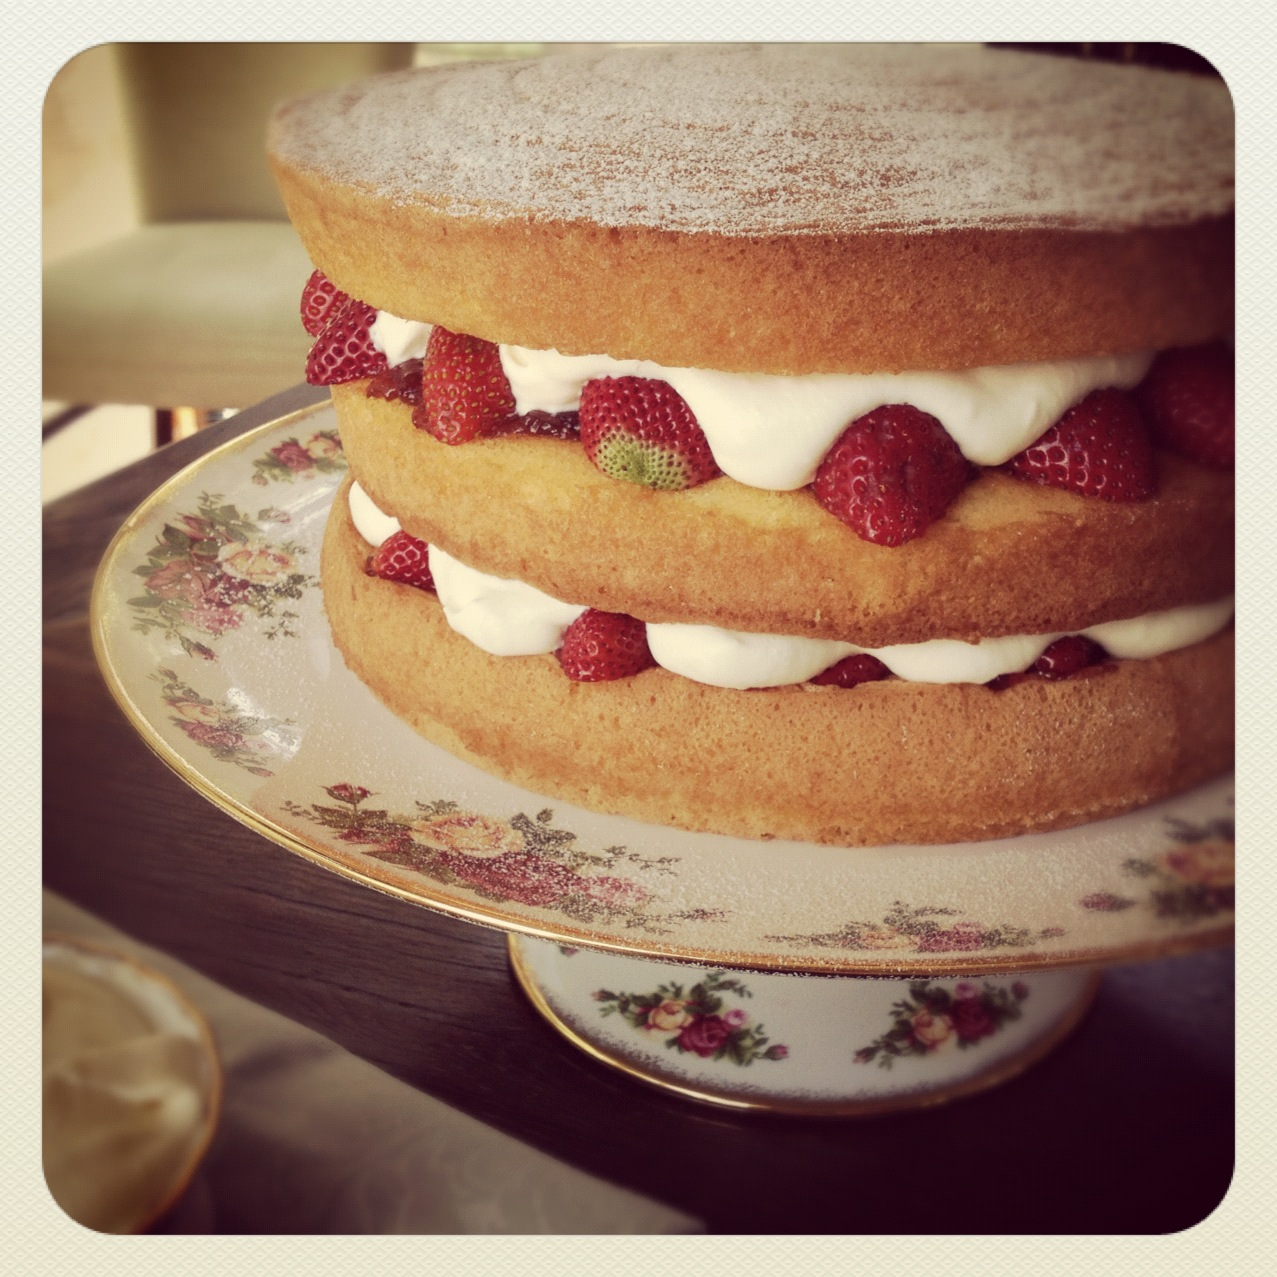 ... like this classic Queen Victoria Sponge. All haughty looking and rich